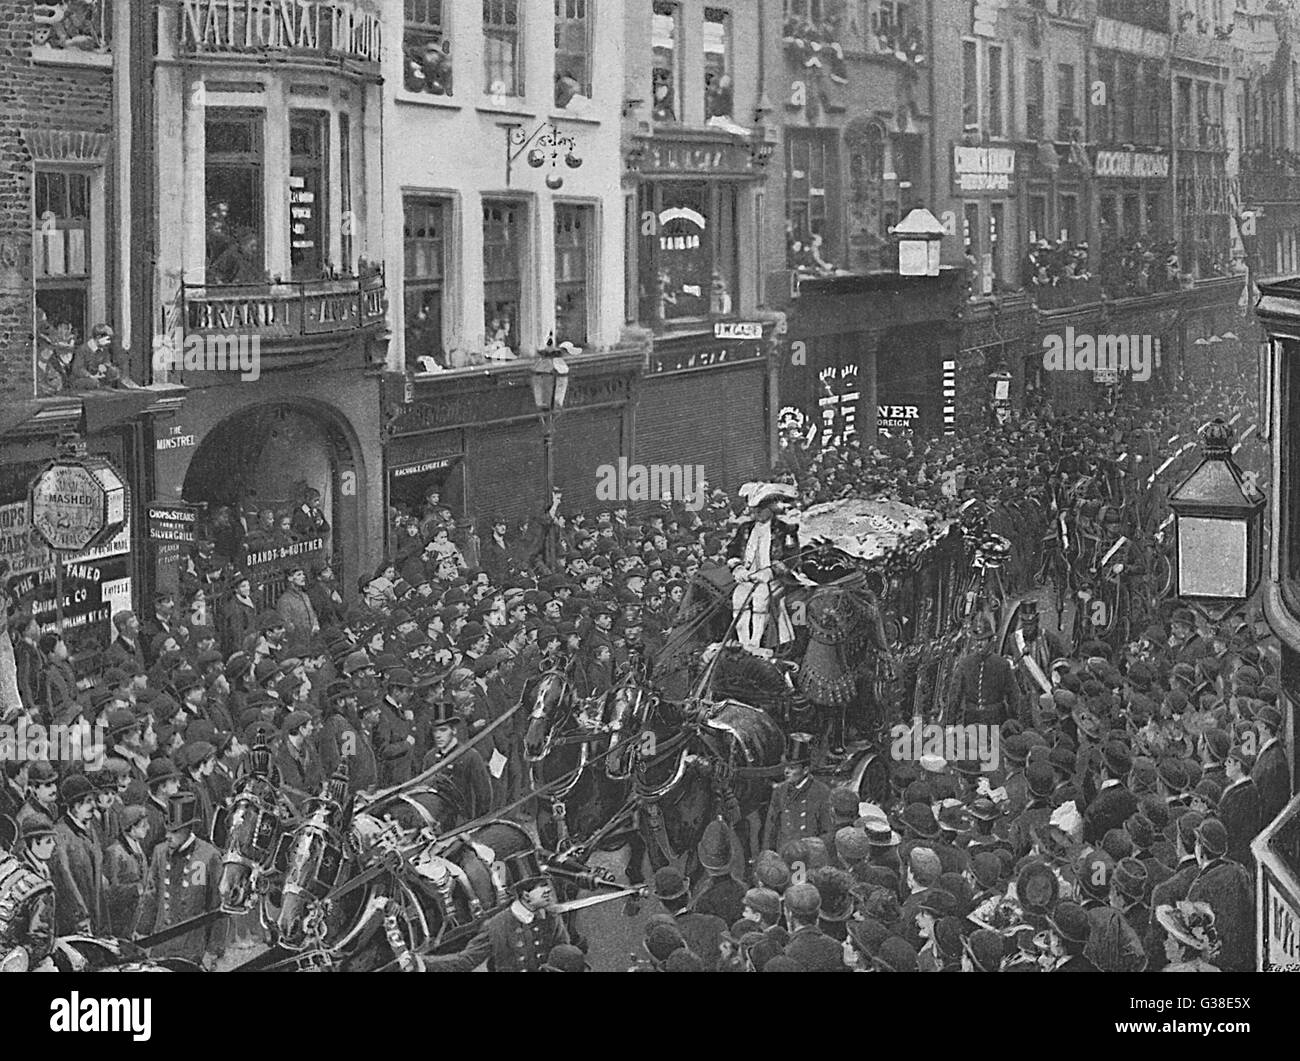 The Lord Mayor's coach passes  through a narrow street of the  City of London, packed with  enthusiastic crowds - Stock Image